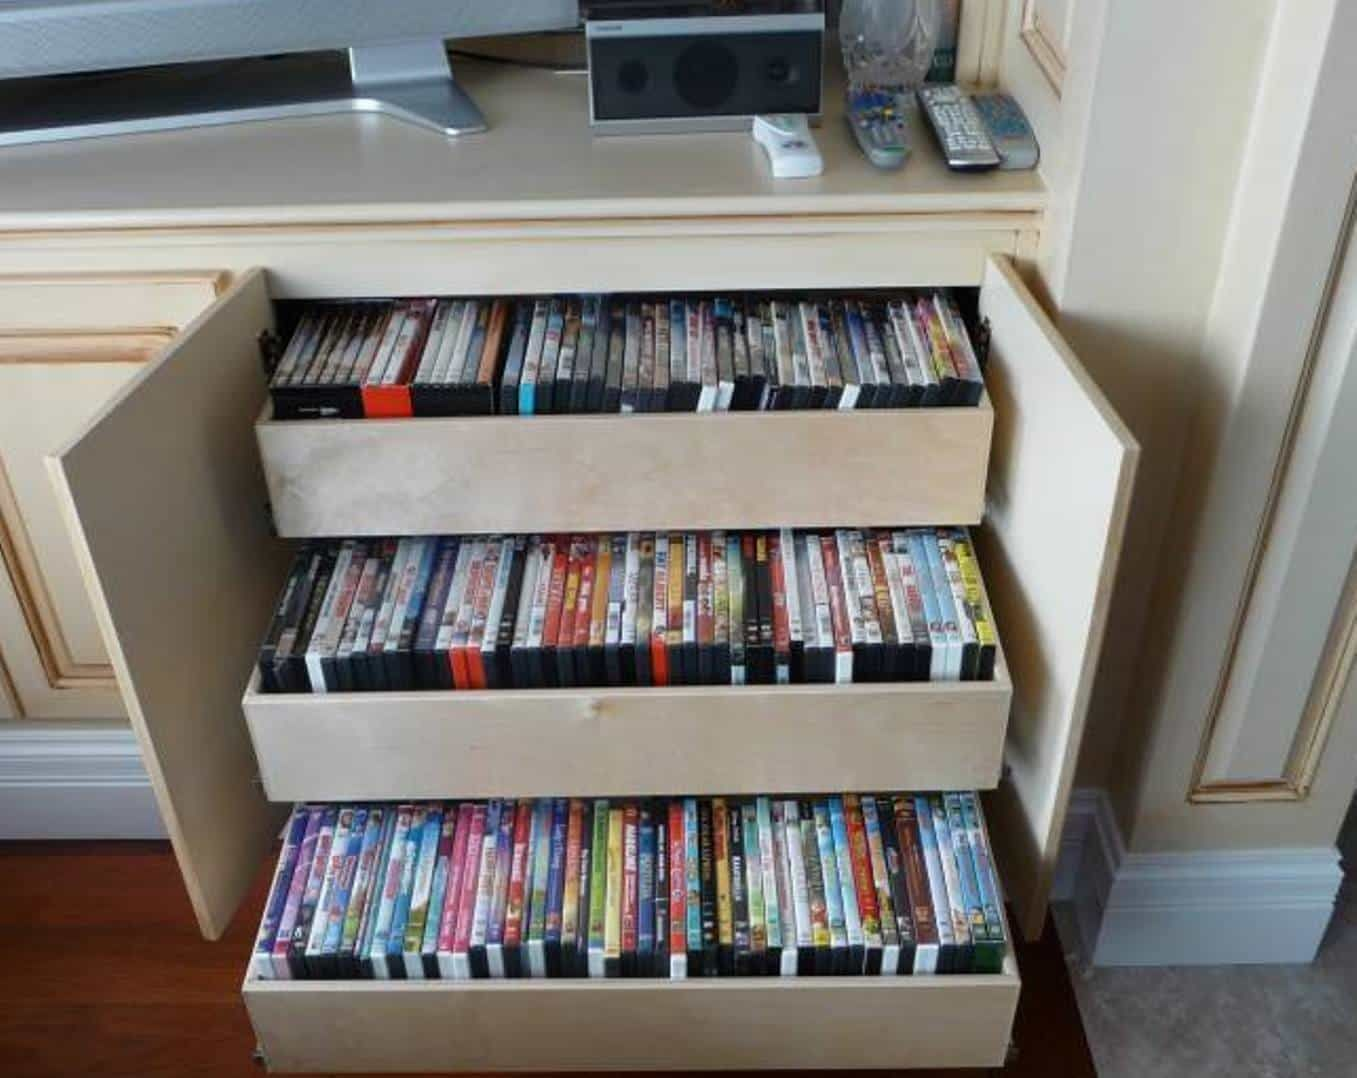 Find And Save Ideas About Dvd Storage Solutions On Pinterest. | See More  Ideas About